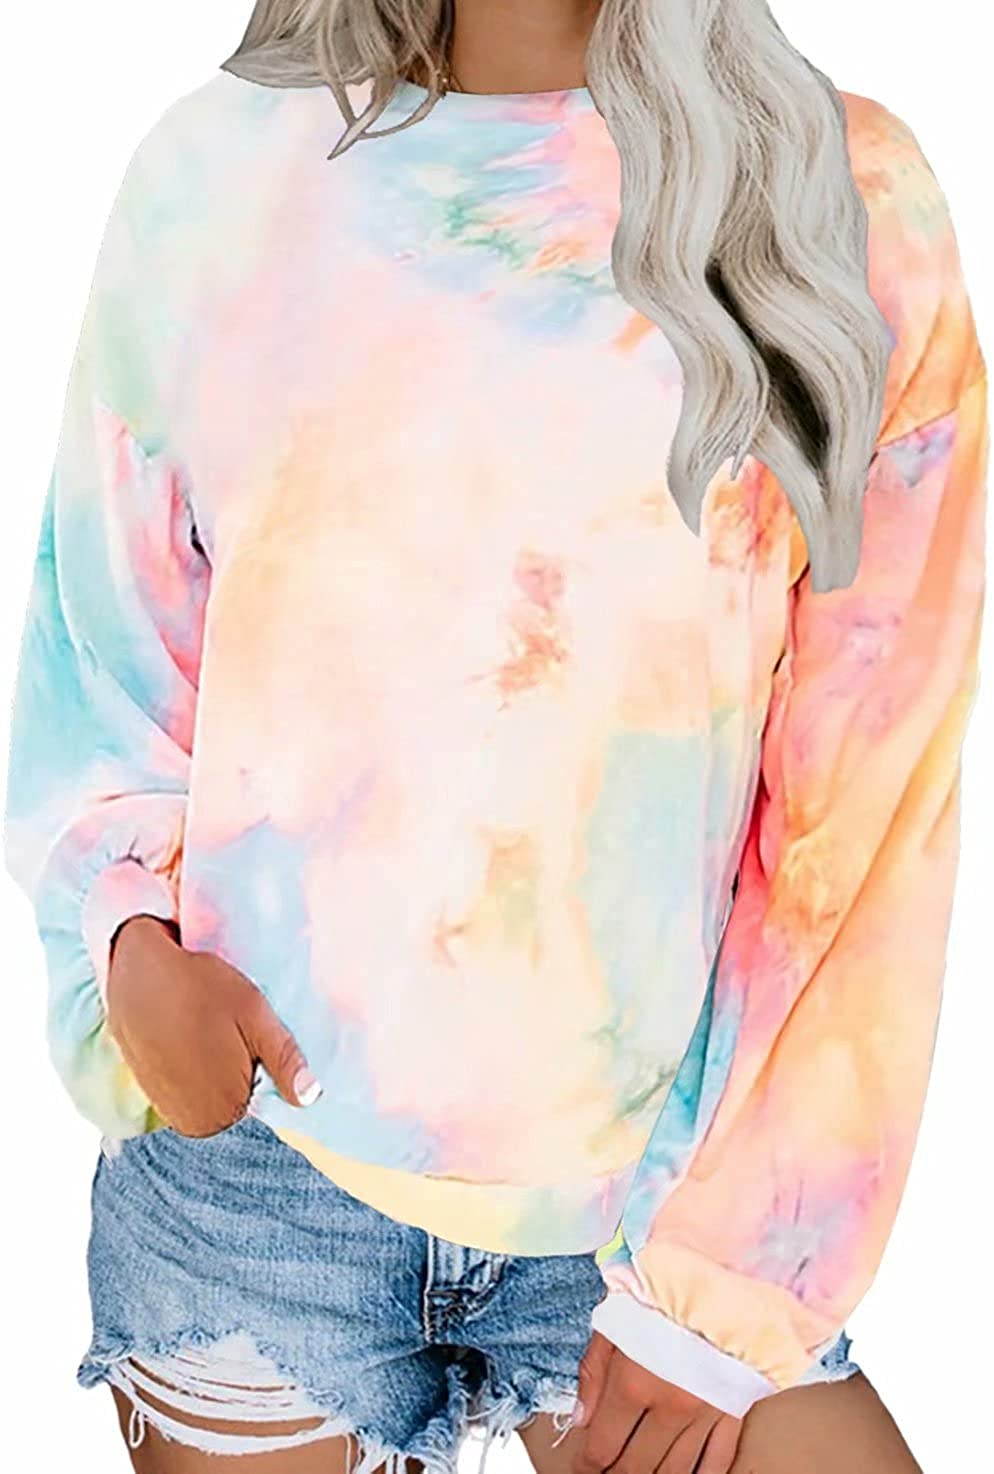 Dokotoo Womens Autumn Ladies Loose Fit Crewneck Long Sleeve Casual Tie Dye Tops Blouses Fashion T-Shirts Thin Pullover Sweatshirt Orange X-Large